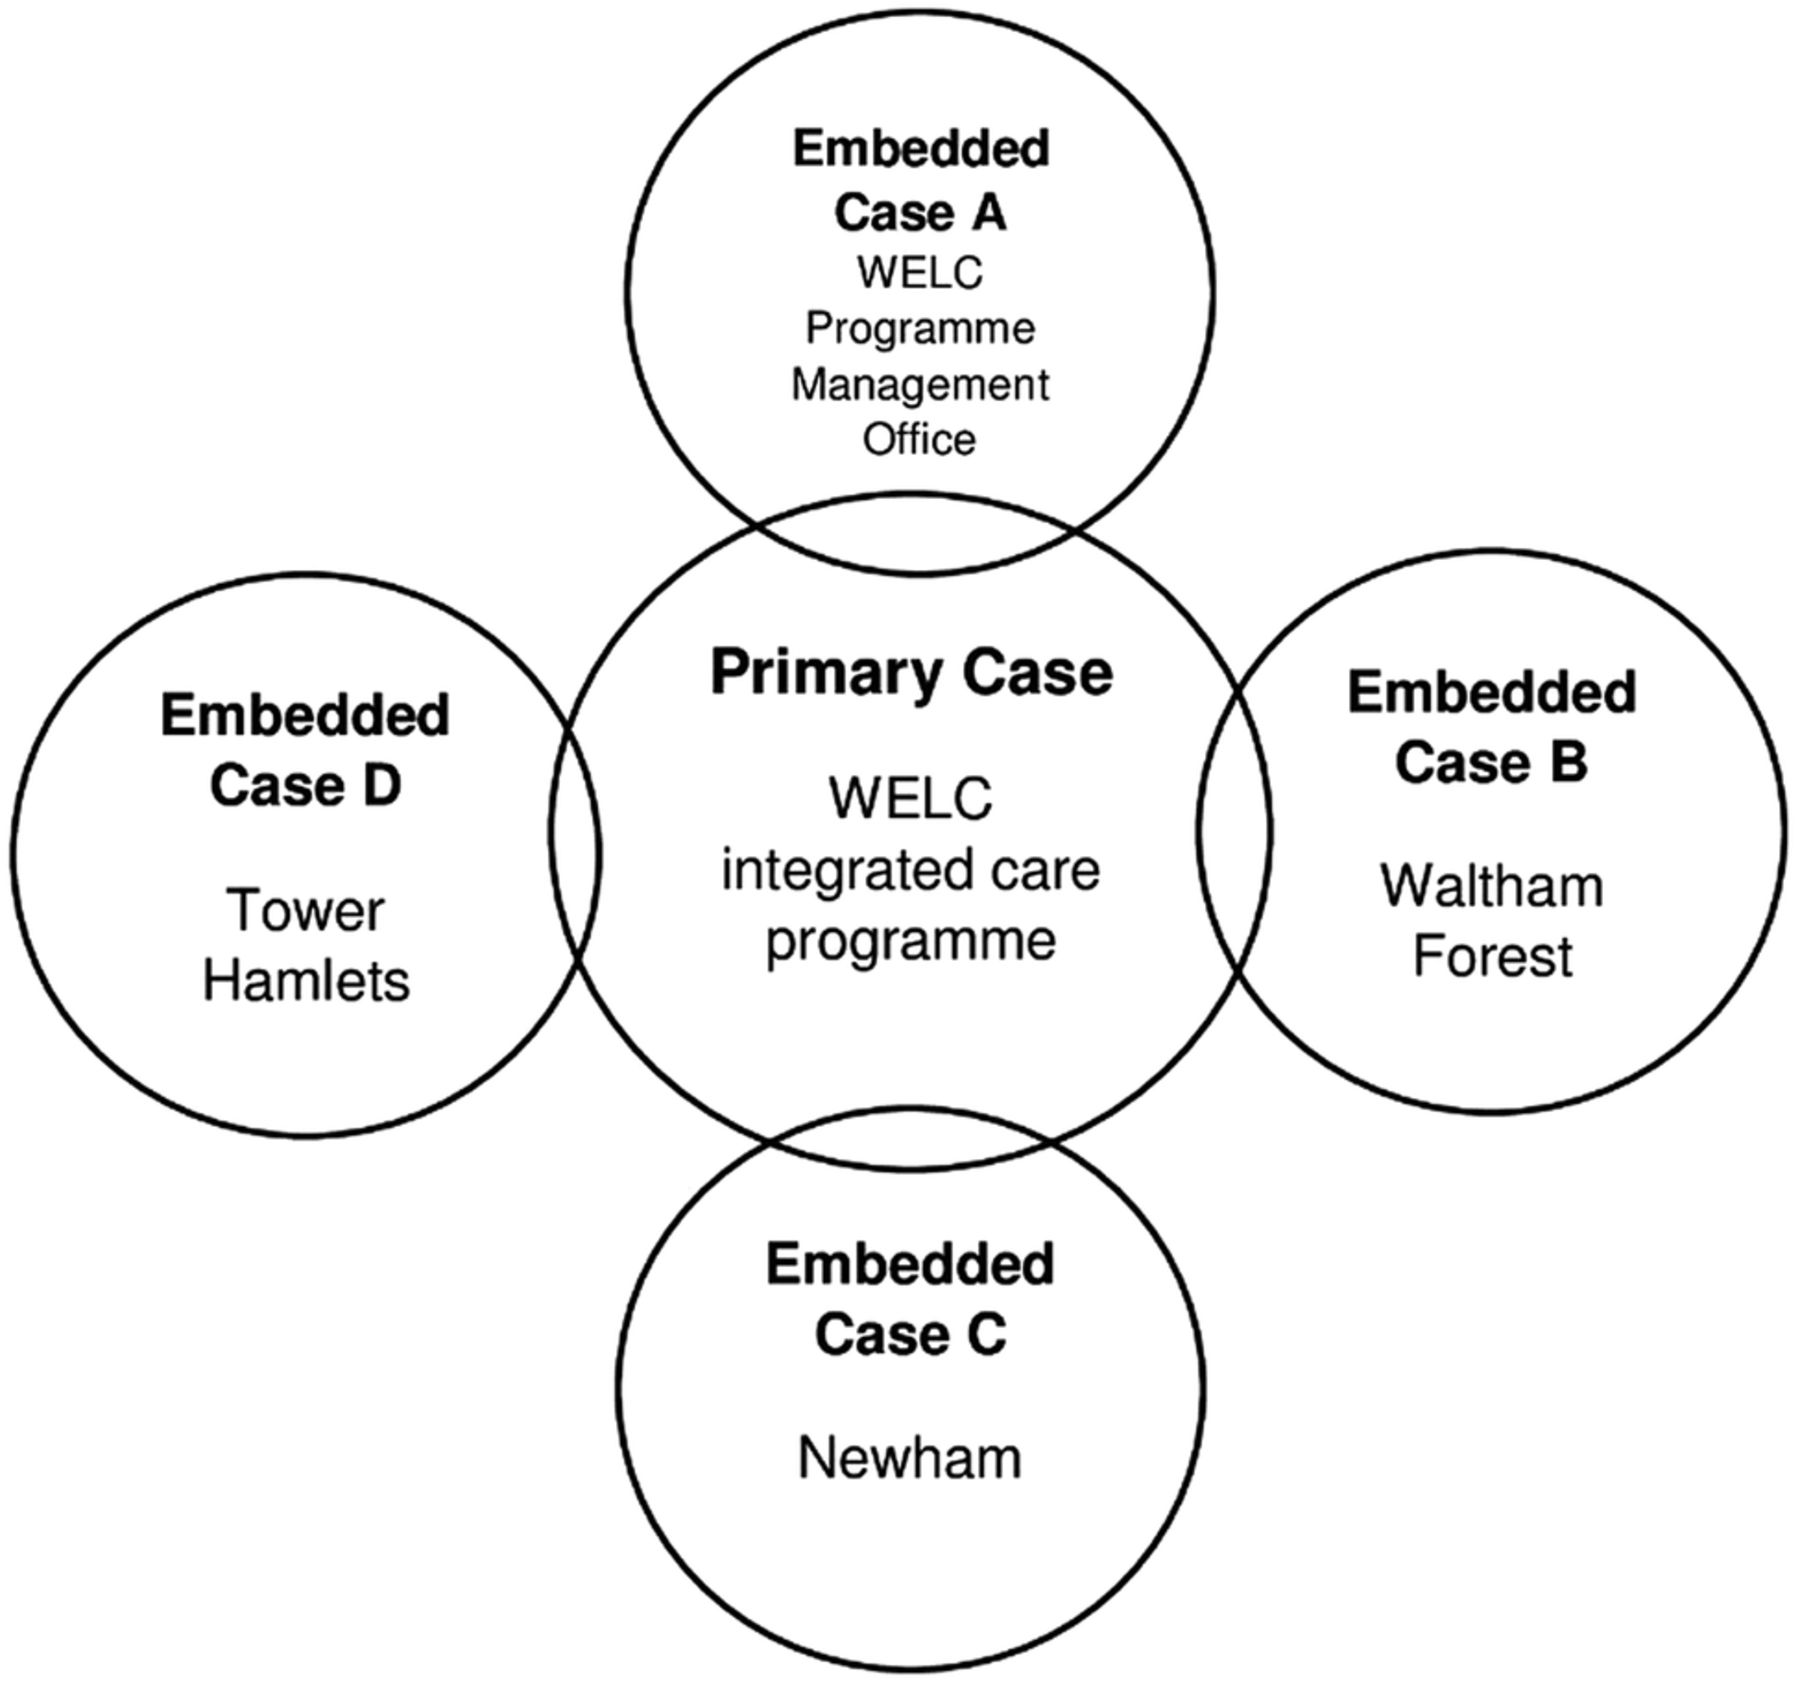 qualitative case study analysis This paper aims at exploring and discussing the possibilities of applying qualitative content analysis as a (text) interpretation method in case study research.